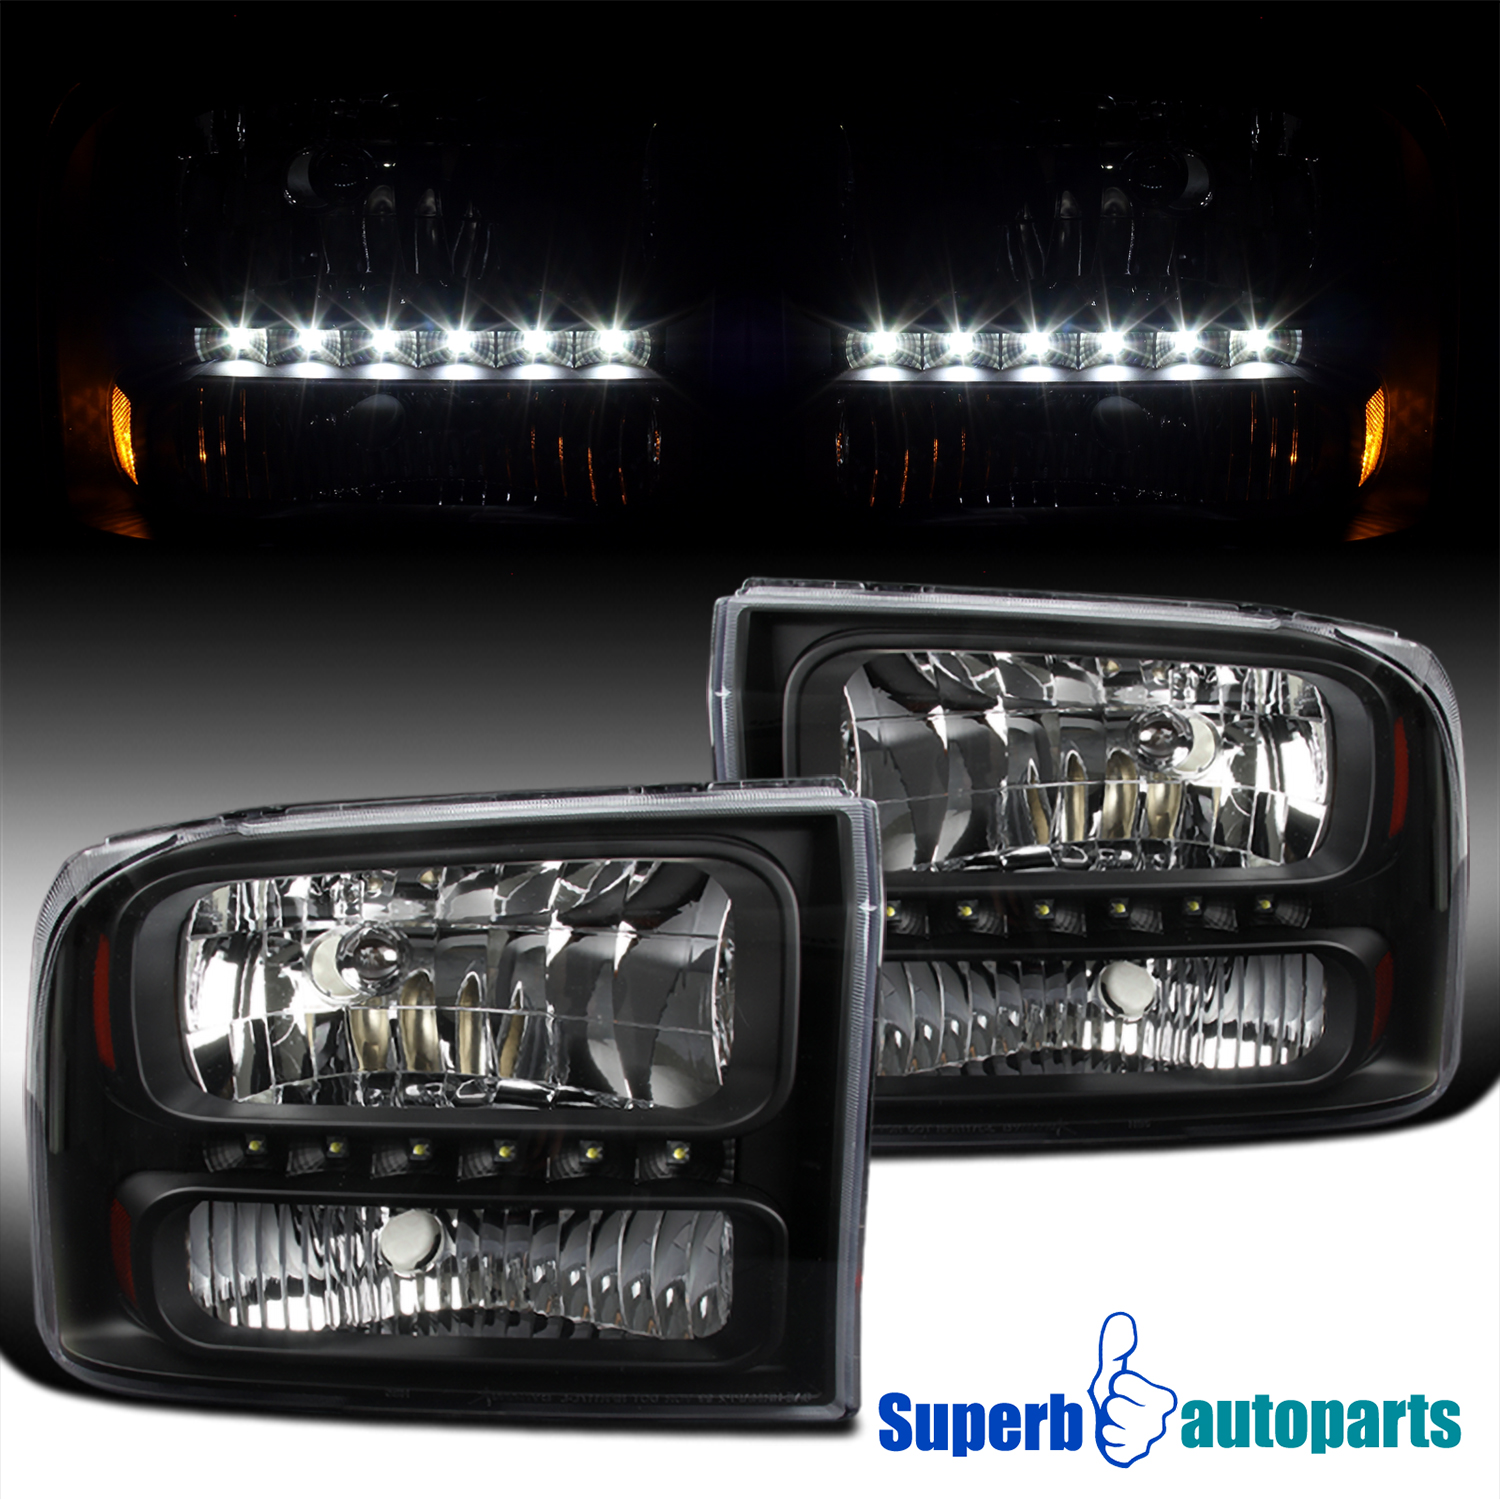 99 F350 Headlights >> Details About For 99 04 Ford F250 F350 2000 2004 Excursion 1pc Style Black Headlights